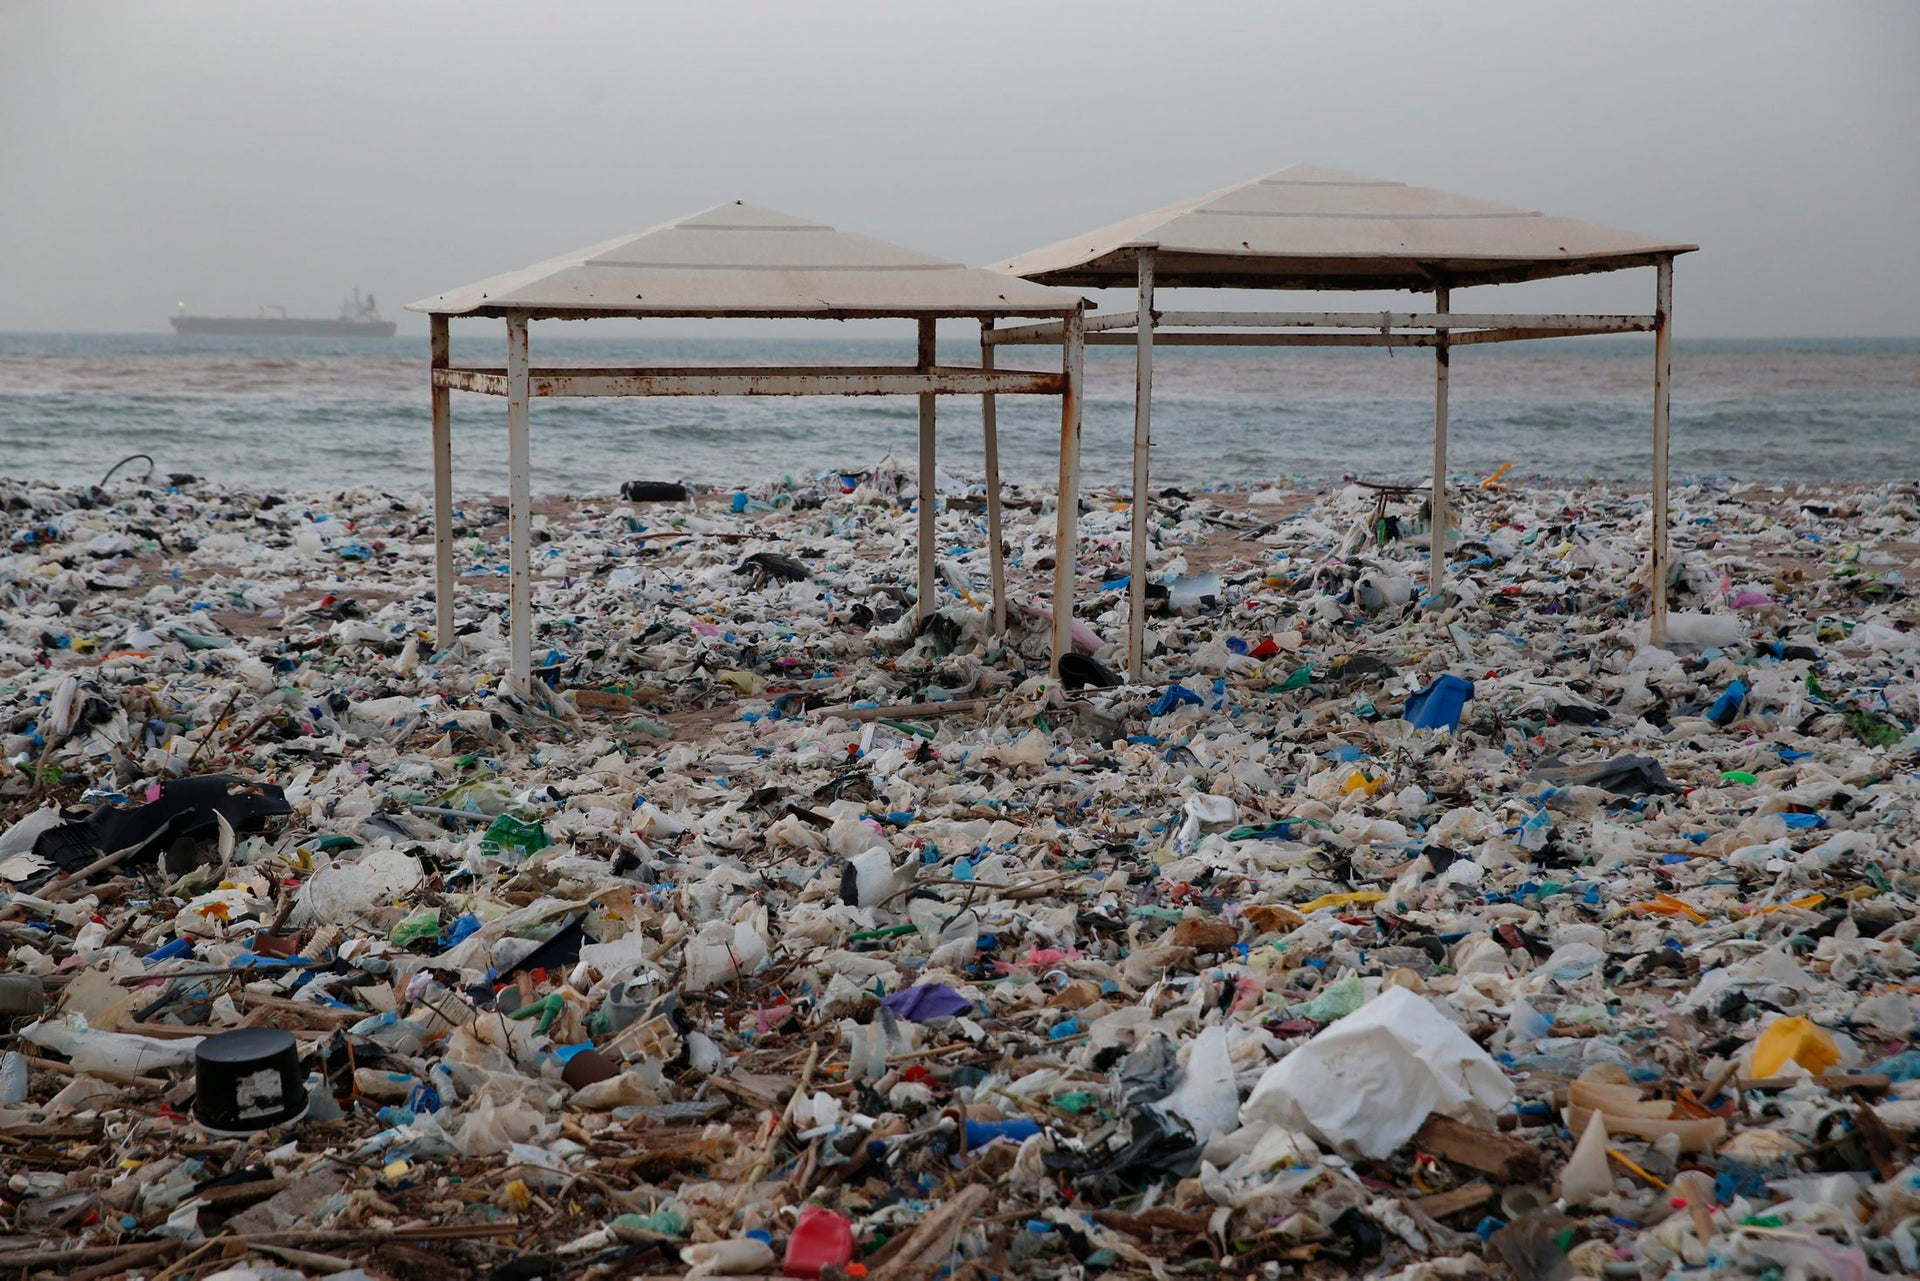 In this Monday Jan. 22, 2018, photo, two tents sit in piles of garbage covering the shore days after an extended storm battered the Mediterranean country at the Zouq Mosbeh costal town north of Beirut, Lebanon. Environmentalists say a winter storm has pushed a wave of trash onto the Lebanese shore outside Beirut, stirring outrage over a waste management crisis that has choked the country since 2015.